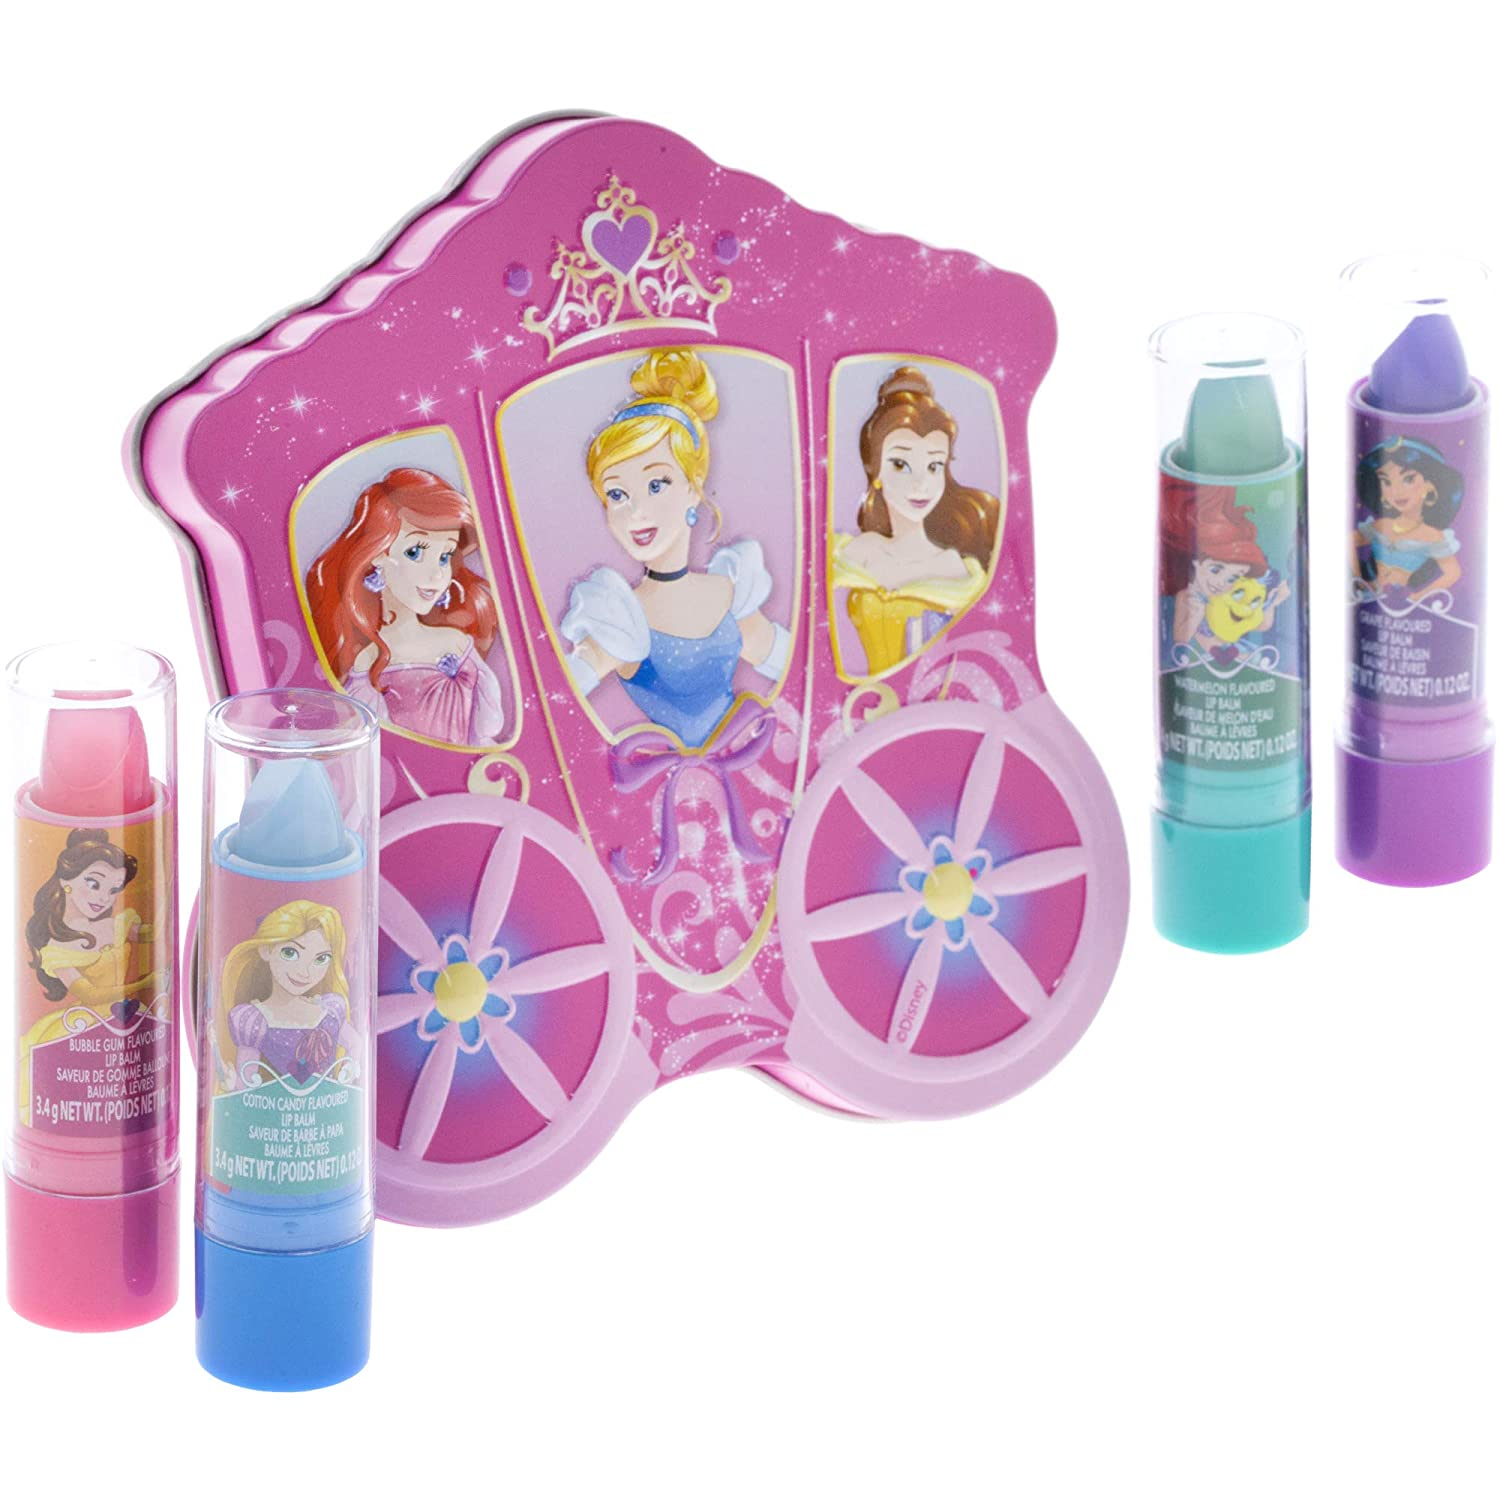 Disney Princess 4 Pack Lip Gloss with Carraige Inspired Storage Case